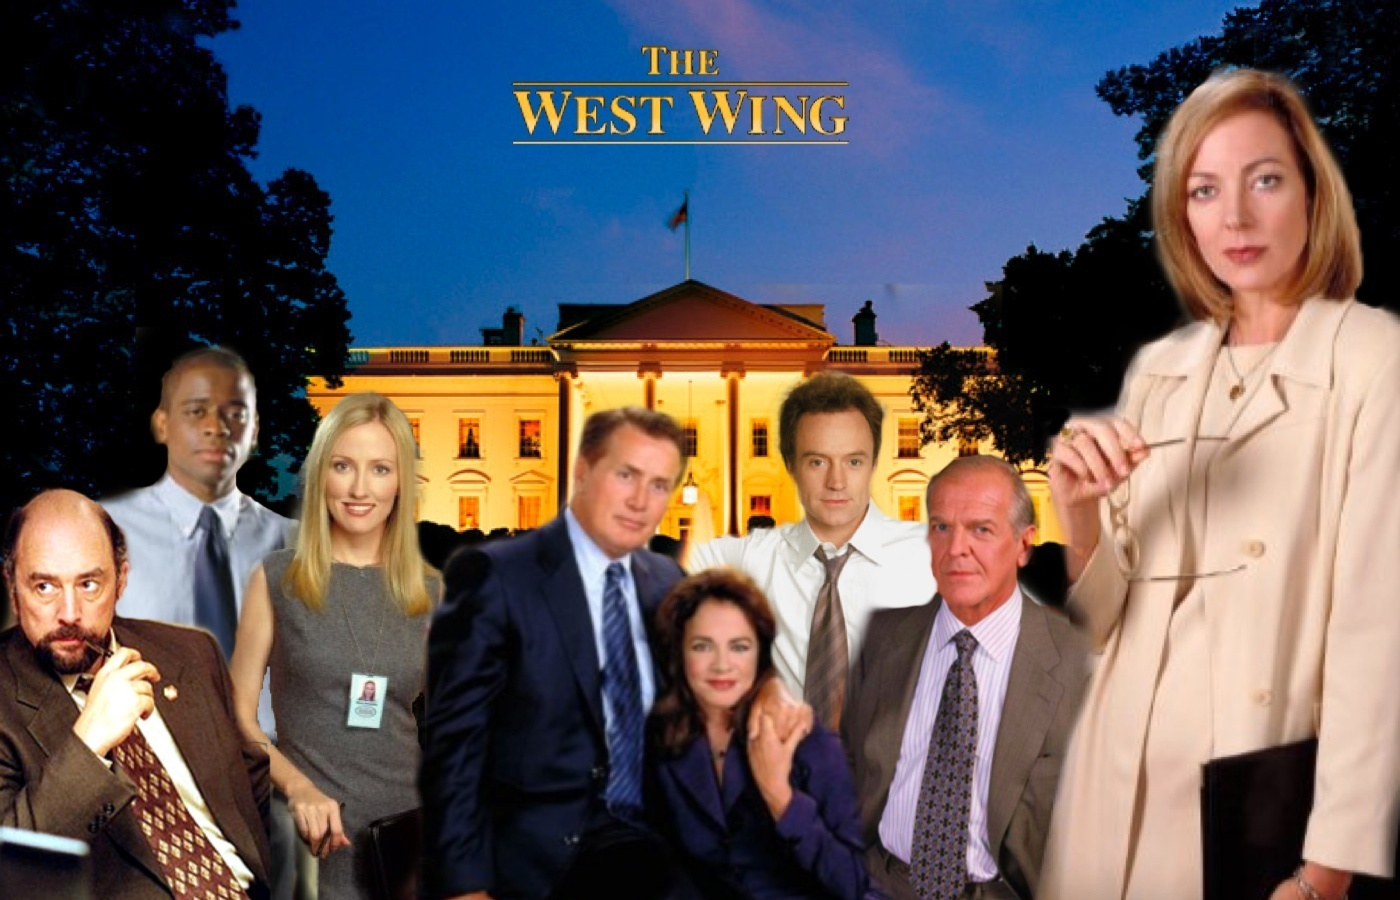 west wing the west wing photo 3474866 fanpop